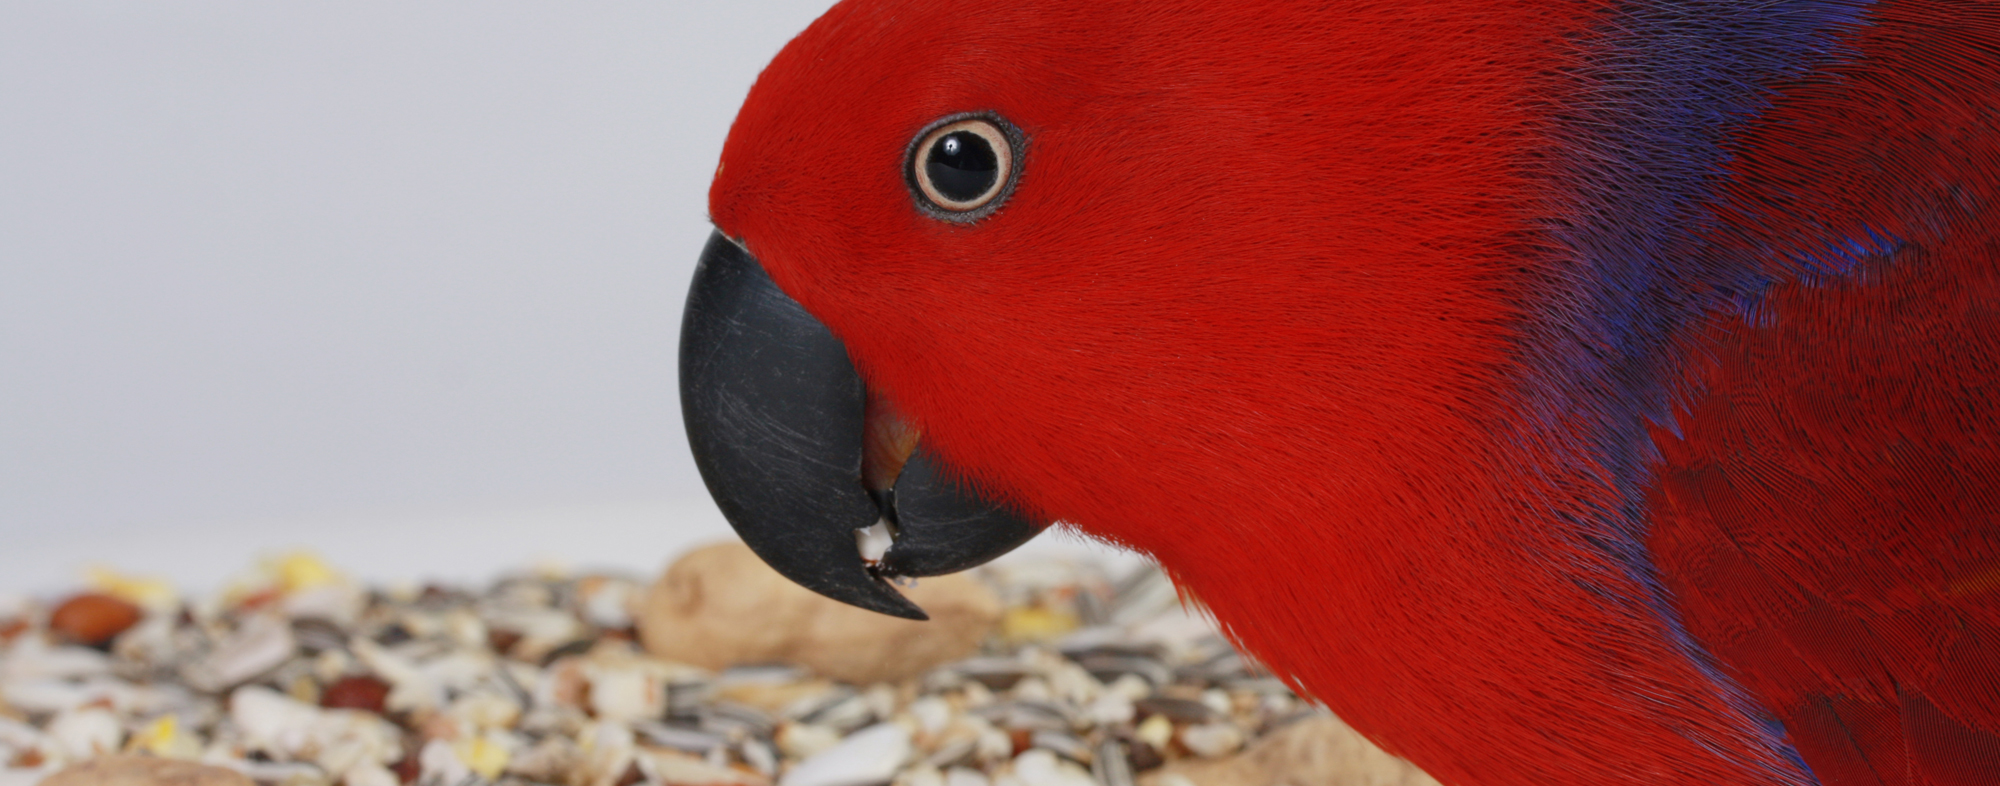 What birds should and do eat includes dried fruits and peanut butter